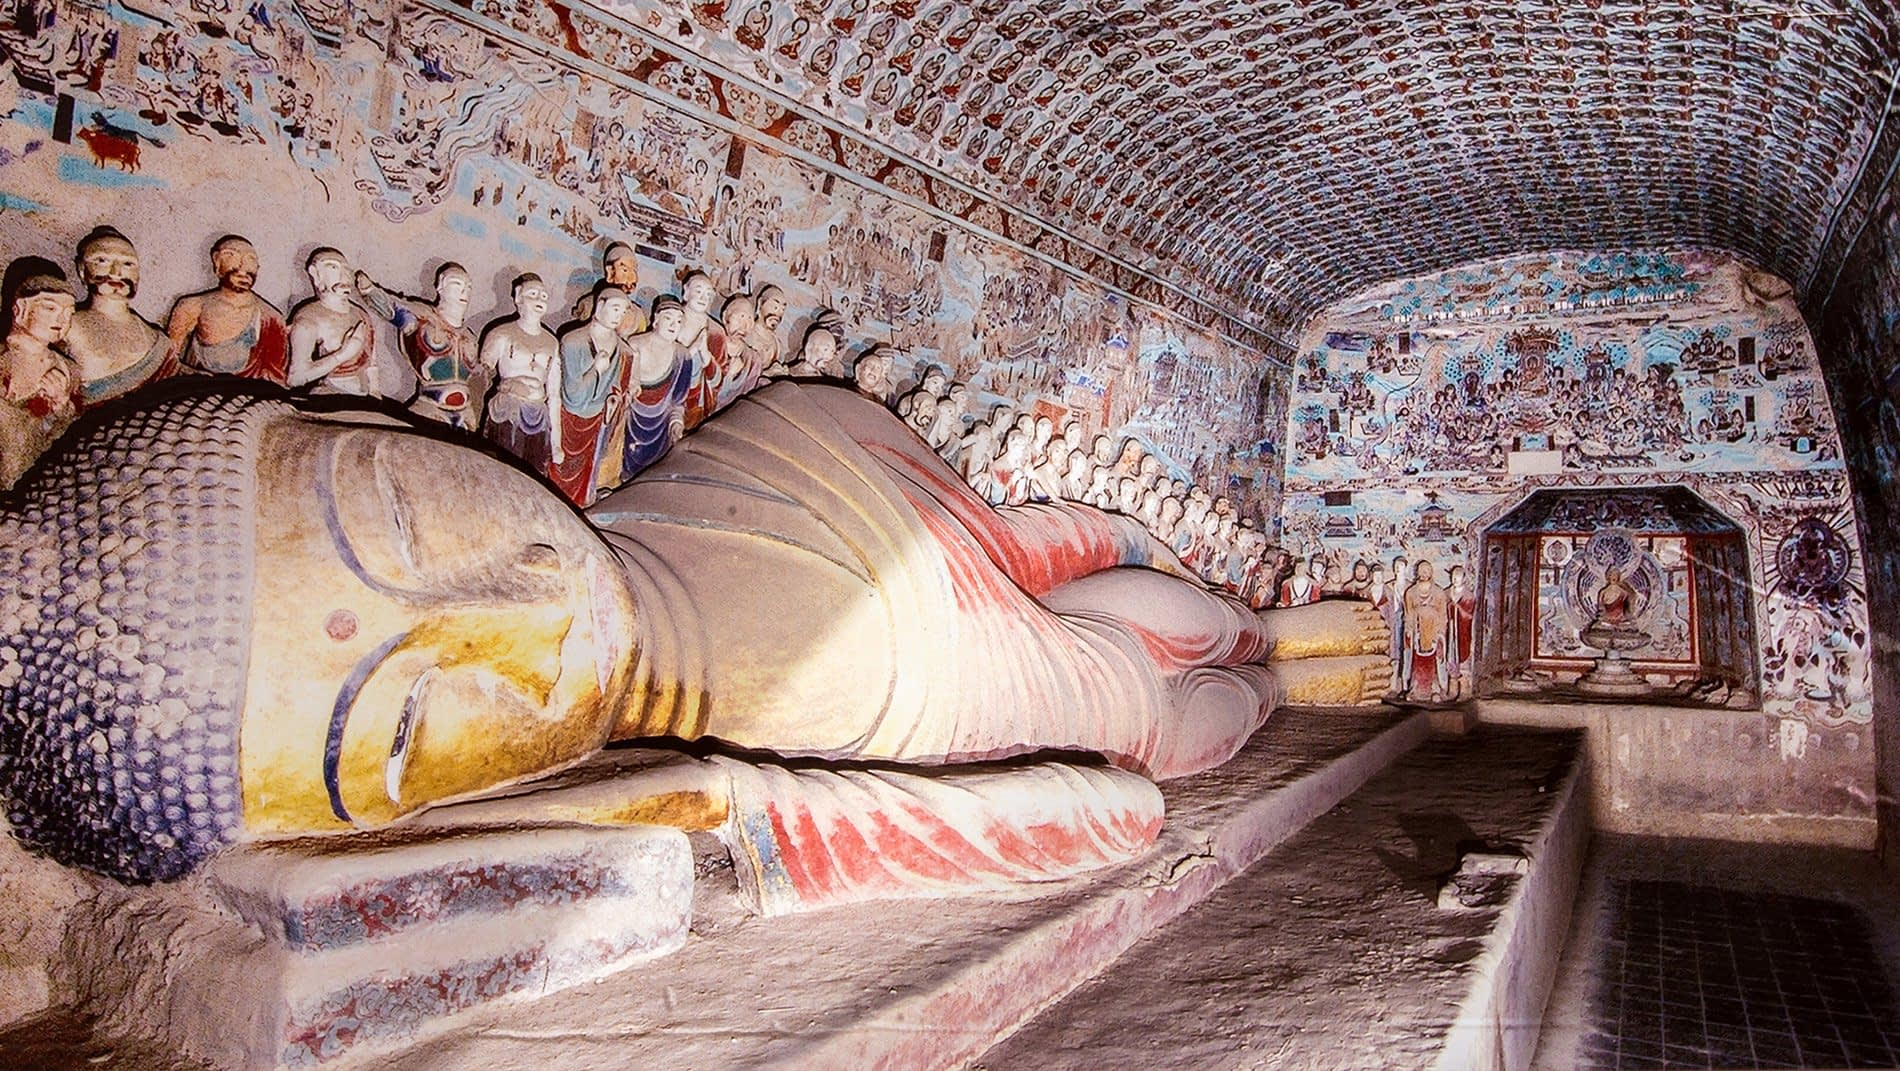 Mogao Caves~The caves span a millennium of history during which time architecture, styles, subjects and painting techniques all evolved. This cave dates from thehigh Tang period (705 - 781), and features a reclining Buddha.